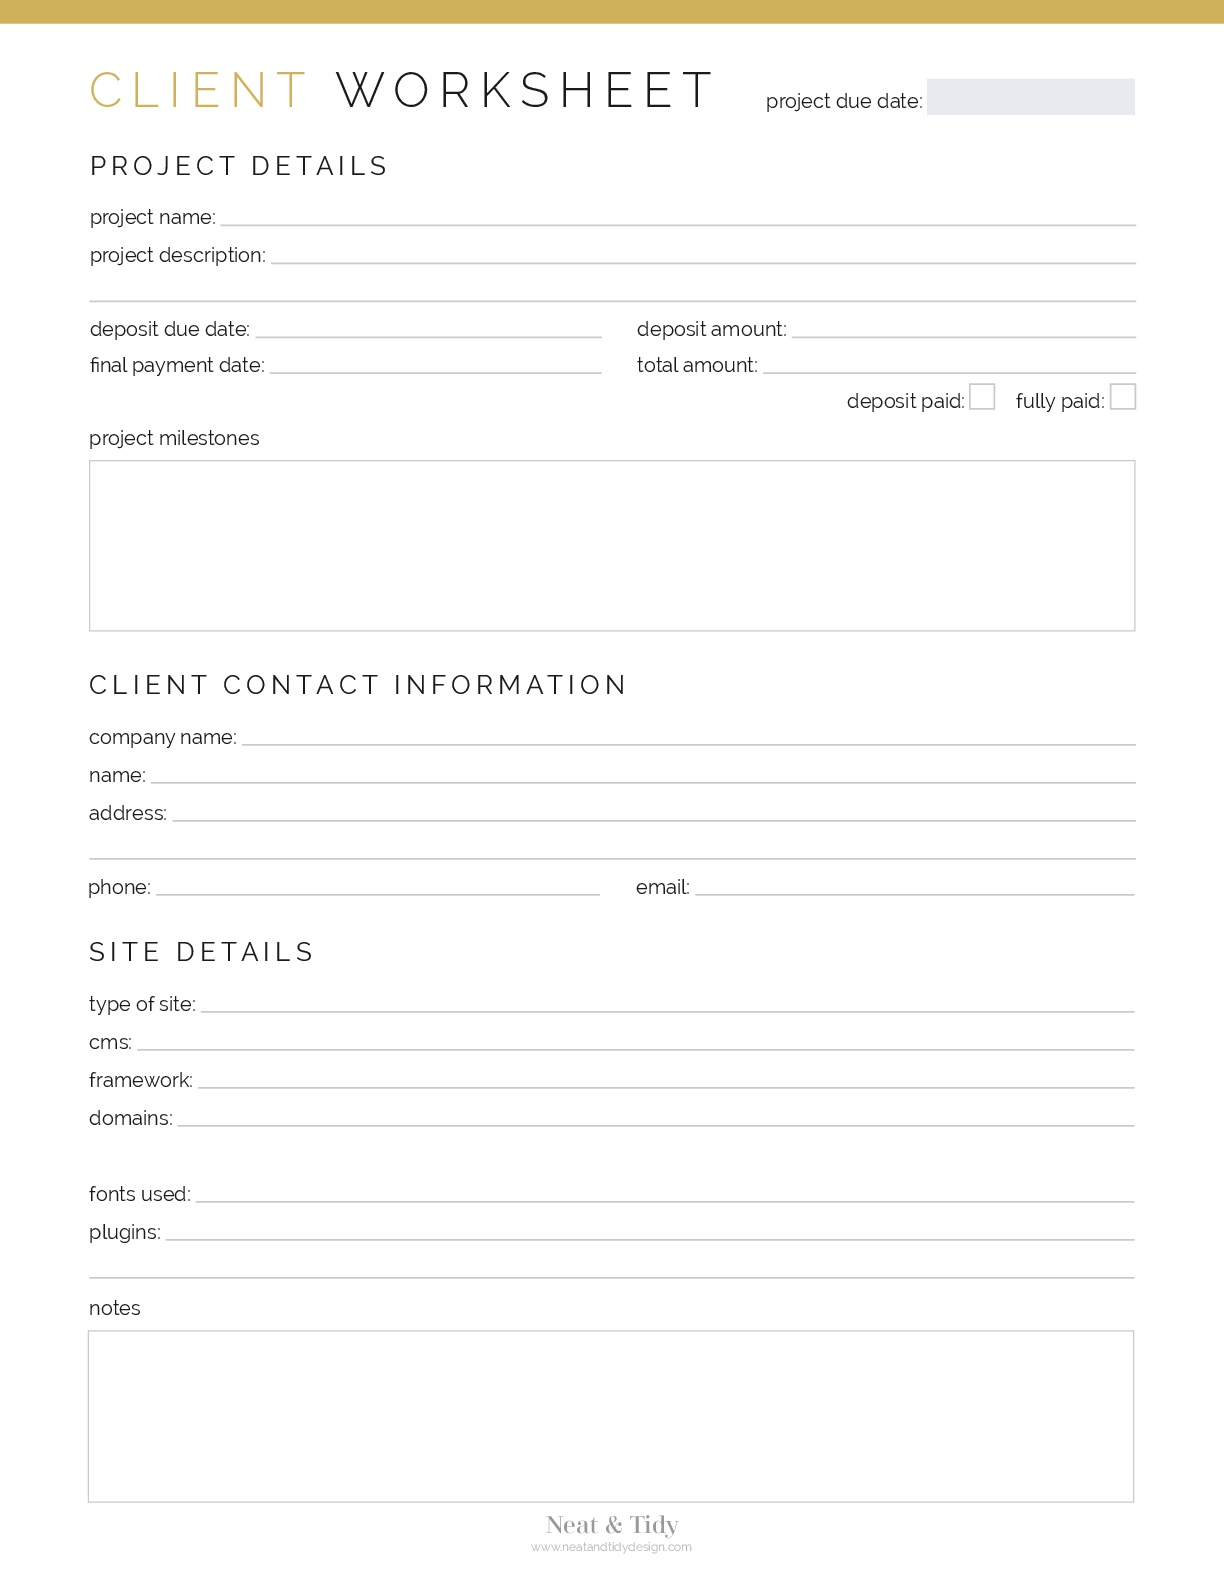 Client Worksheet Web Design